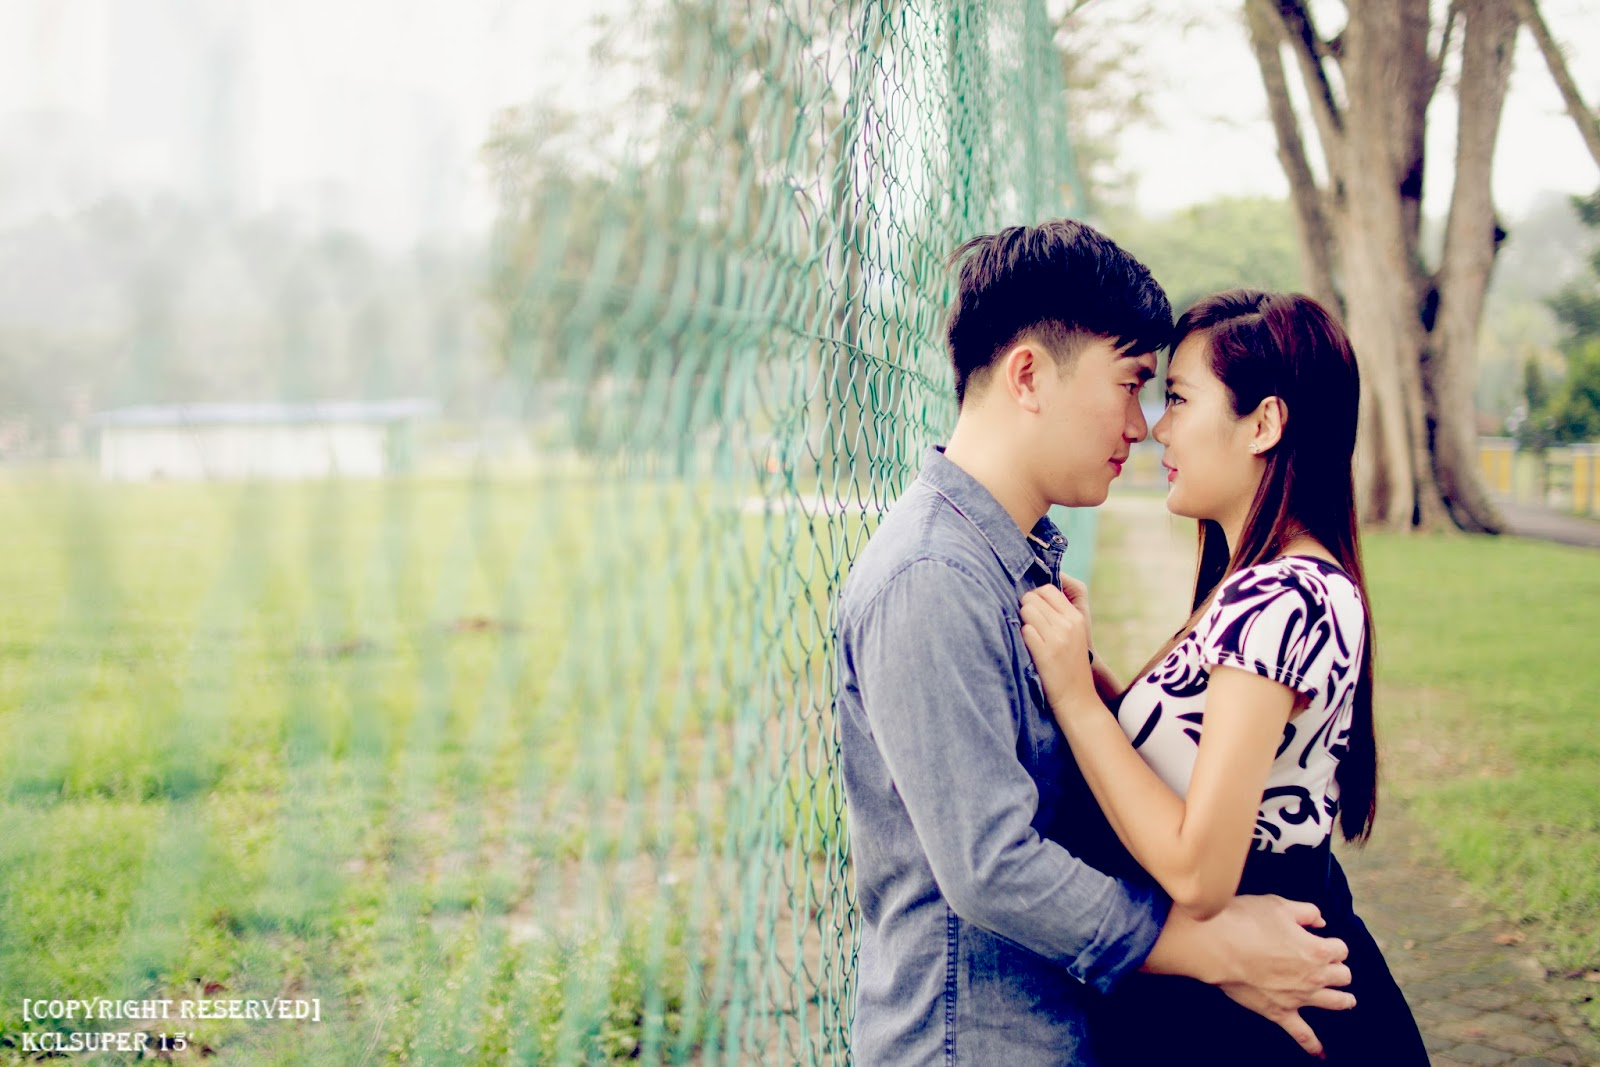 Matchmaking services malaysia